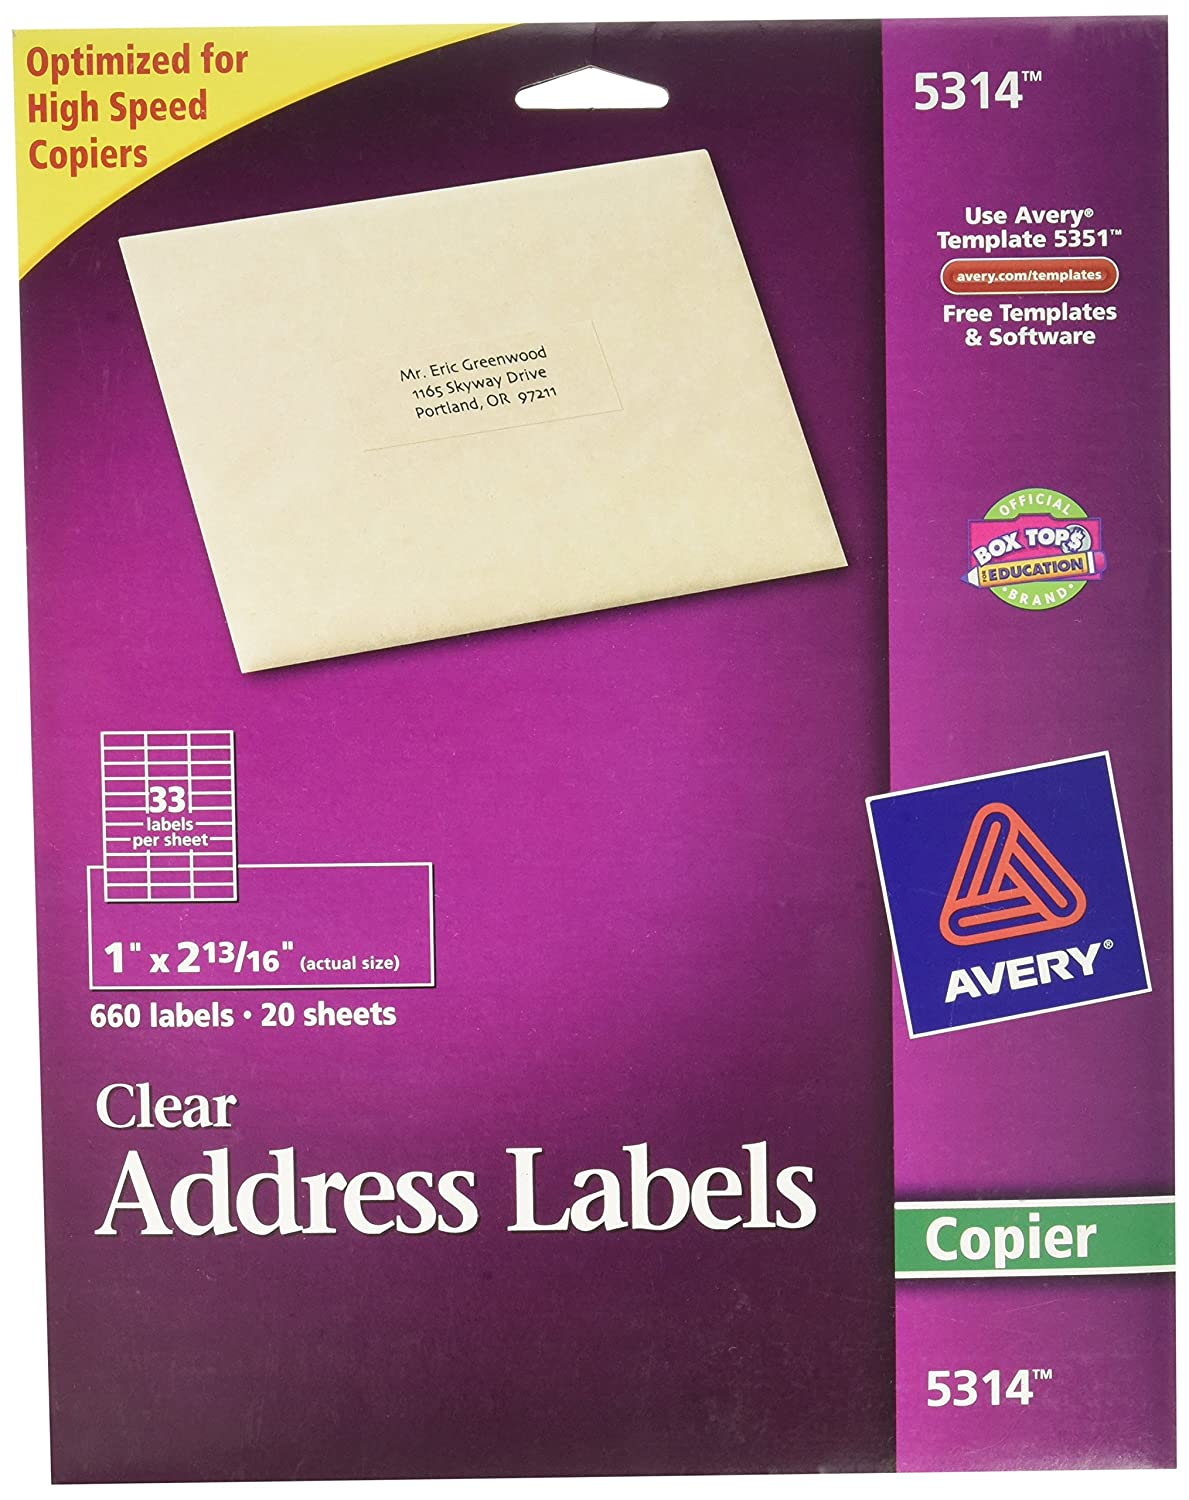 Amazon.com : Avery 5314 Self-adhesive address labels for copiers ...